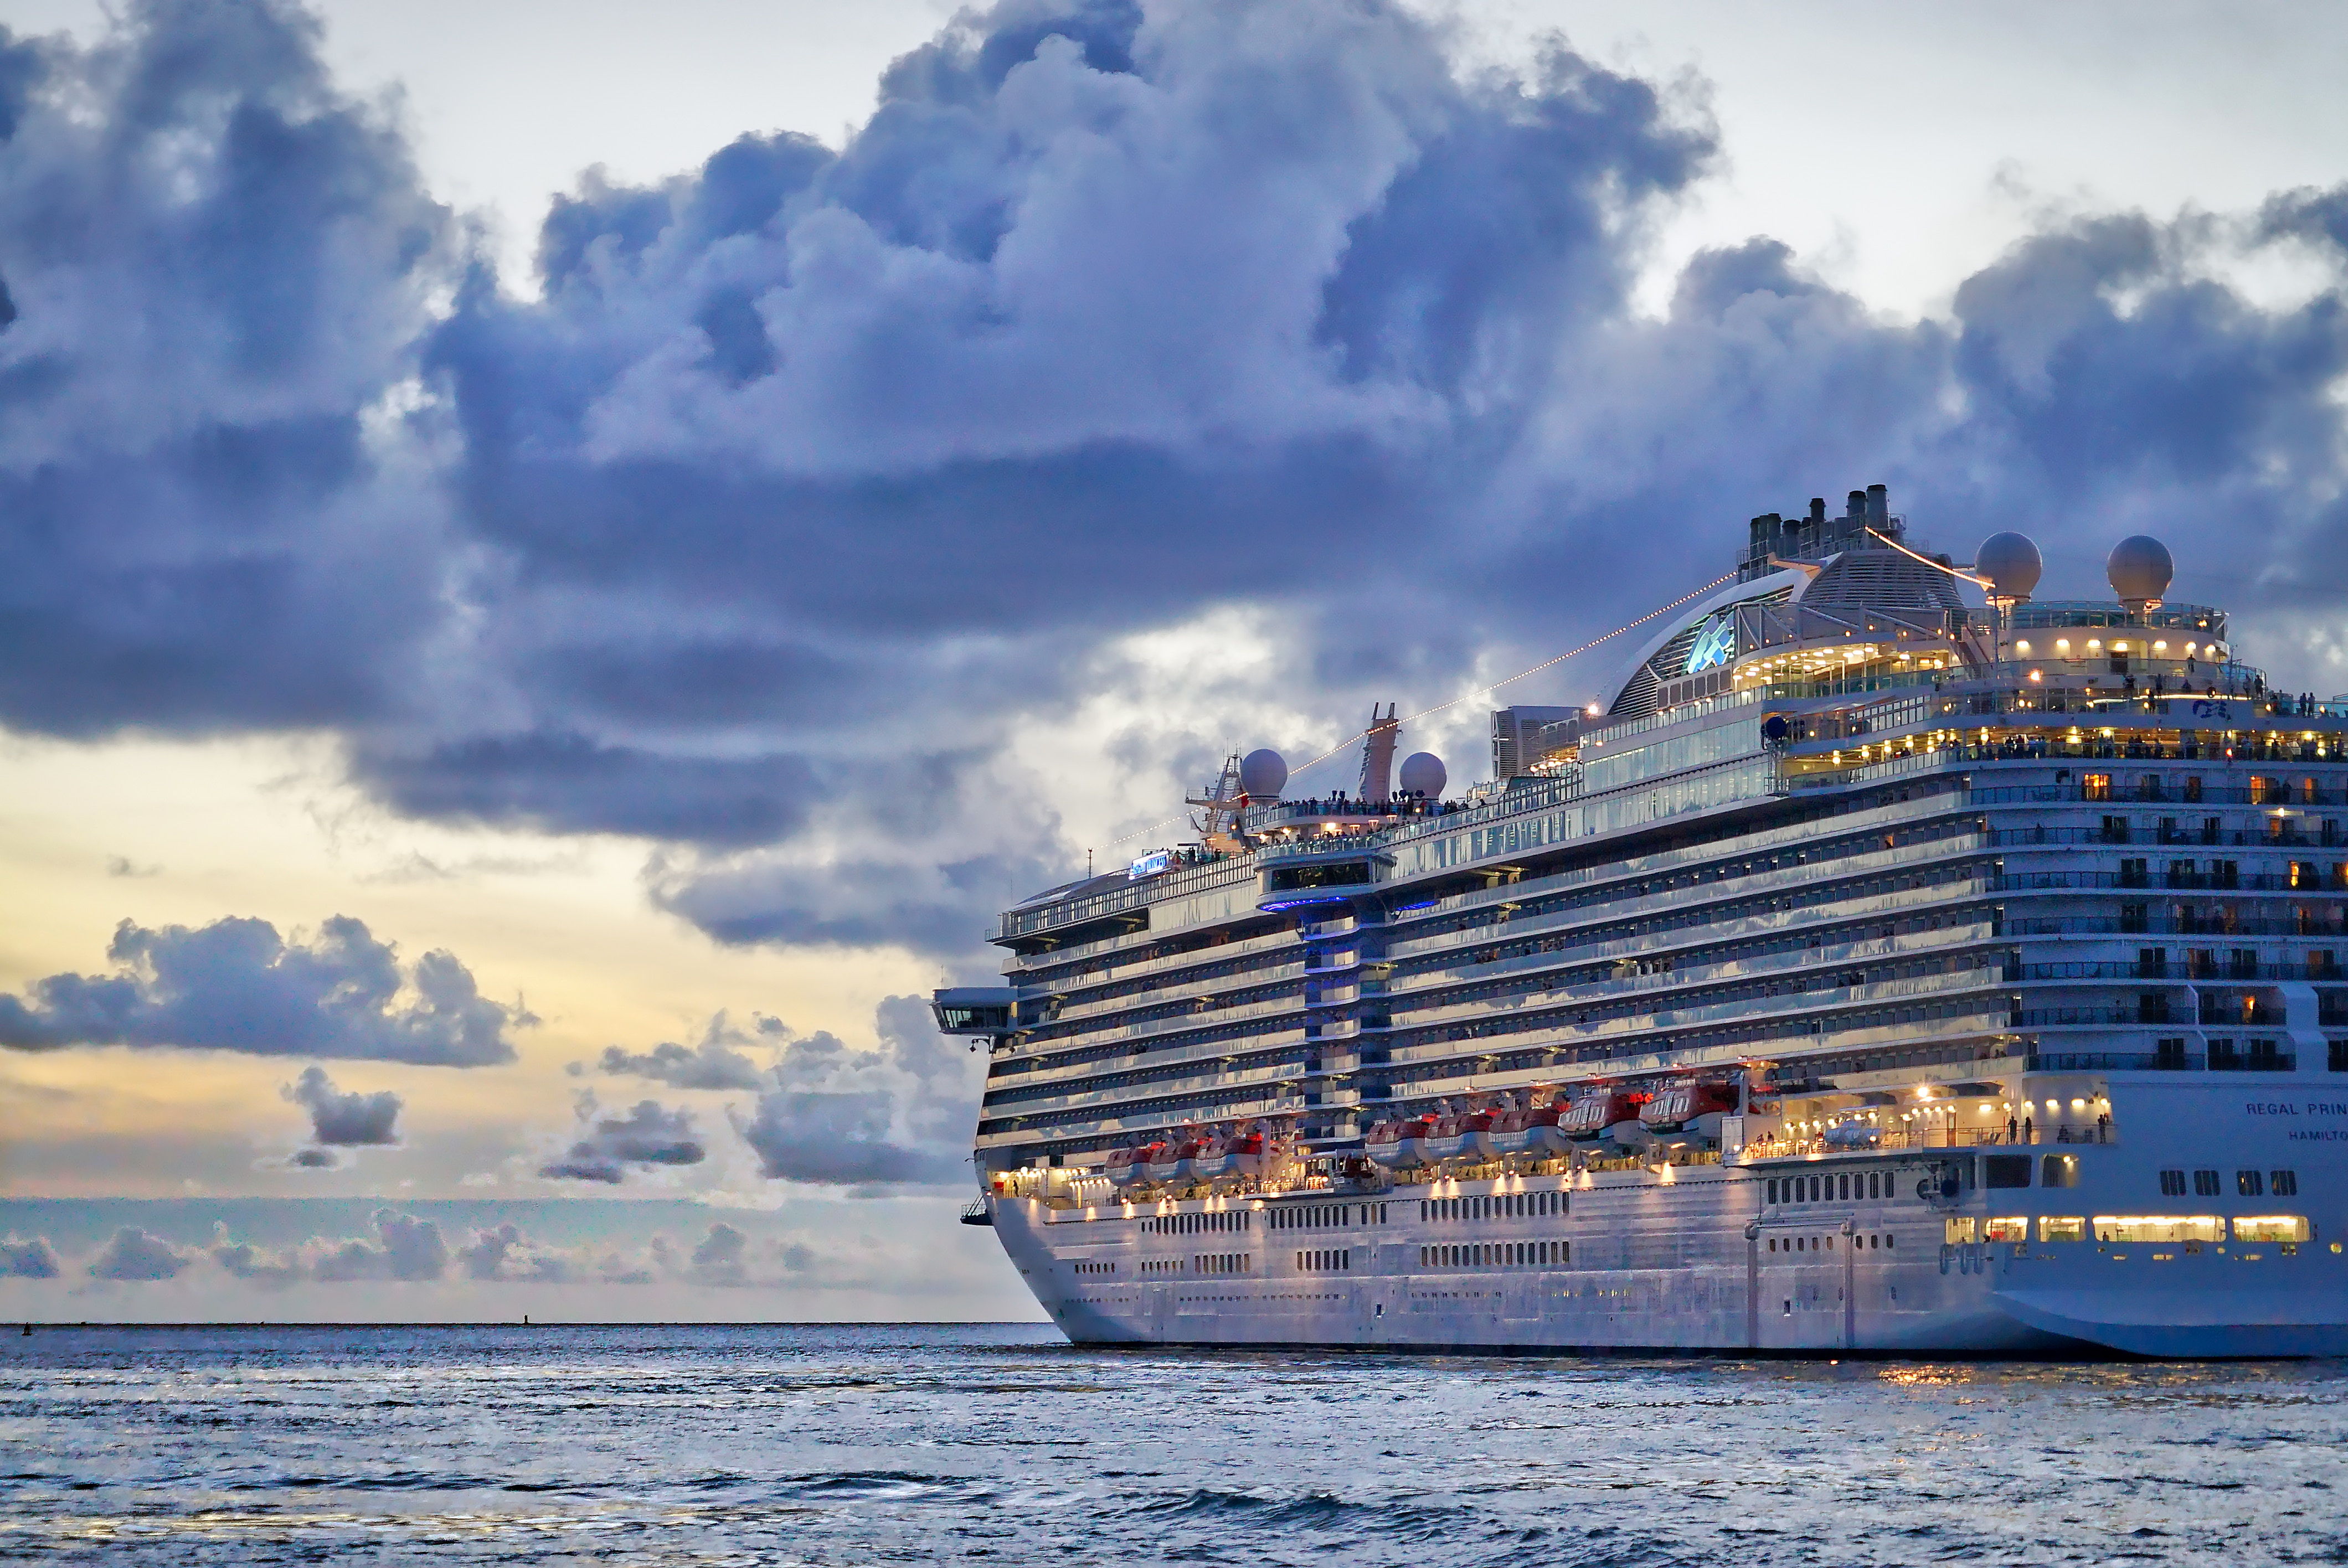 SpecTec invest in Cruise